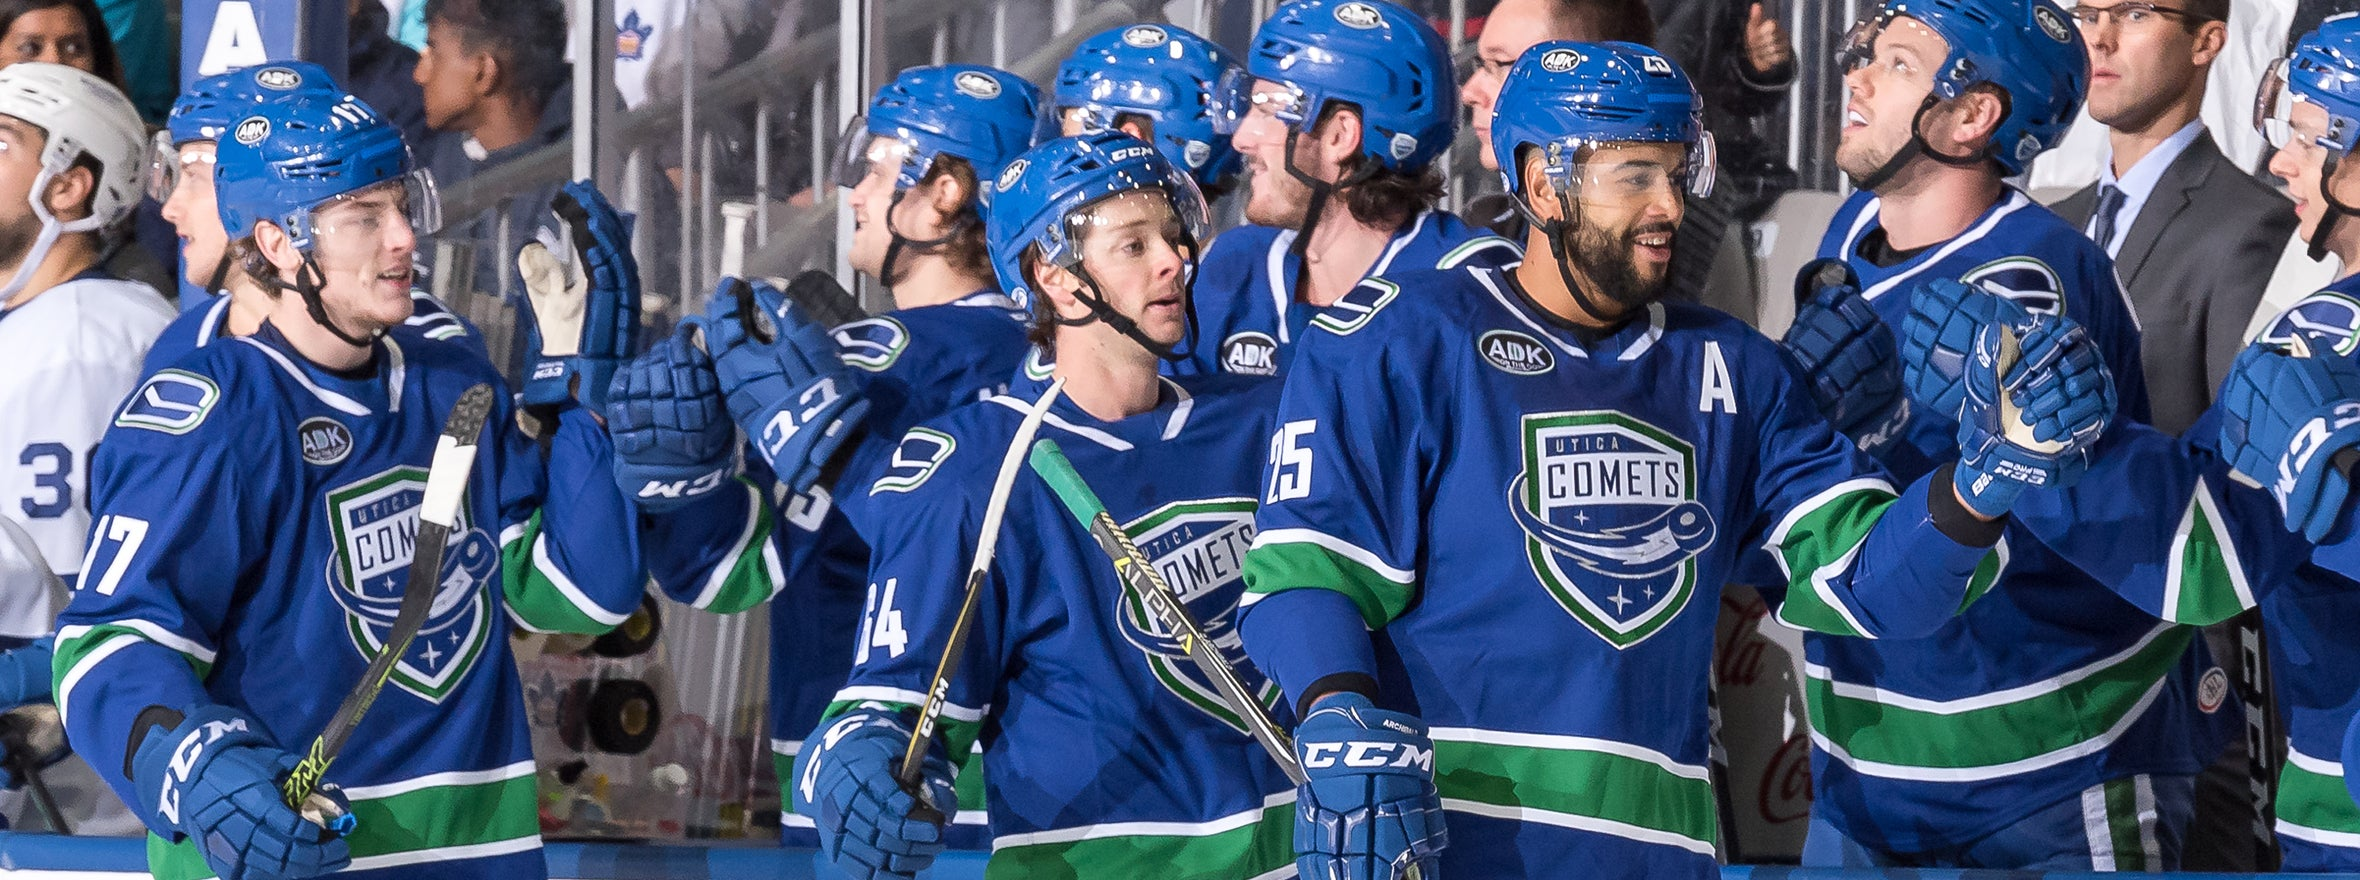 BOUCHER, GAUDETTE POWER COMETS TO VICTORY OVER MARLIES